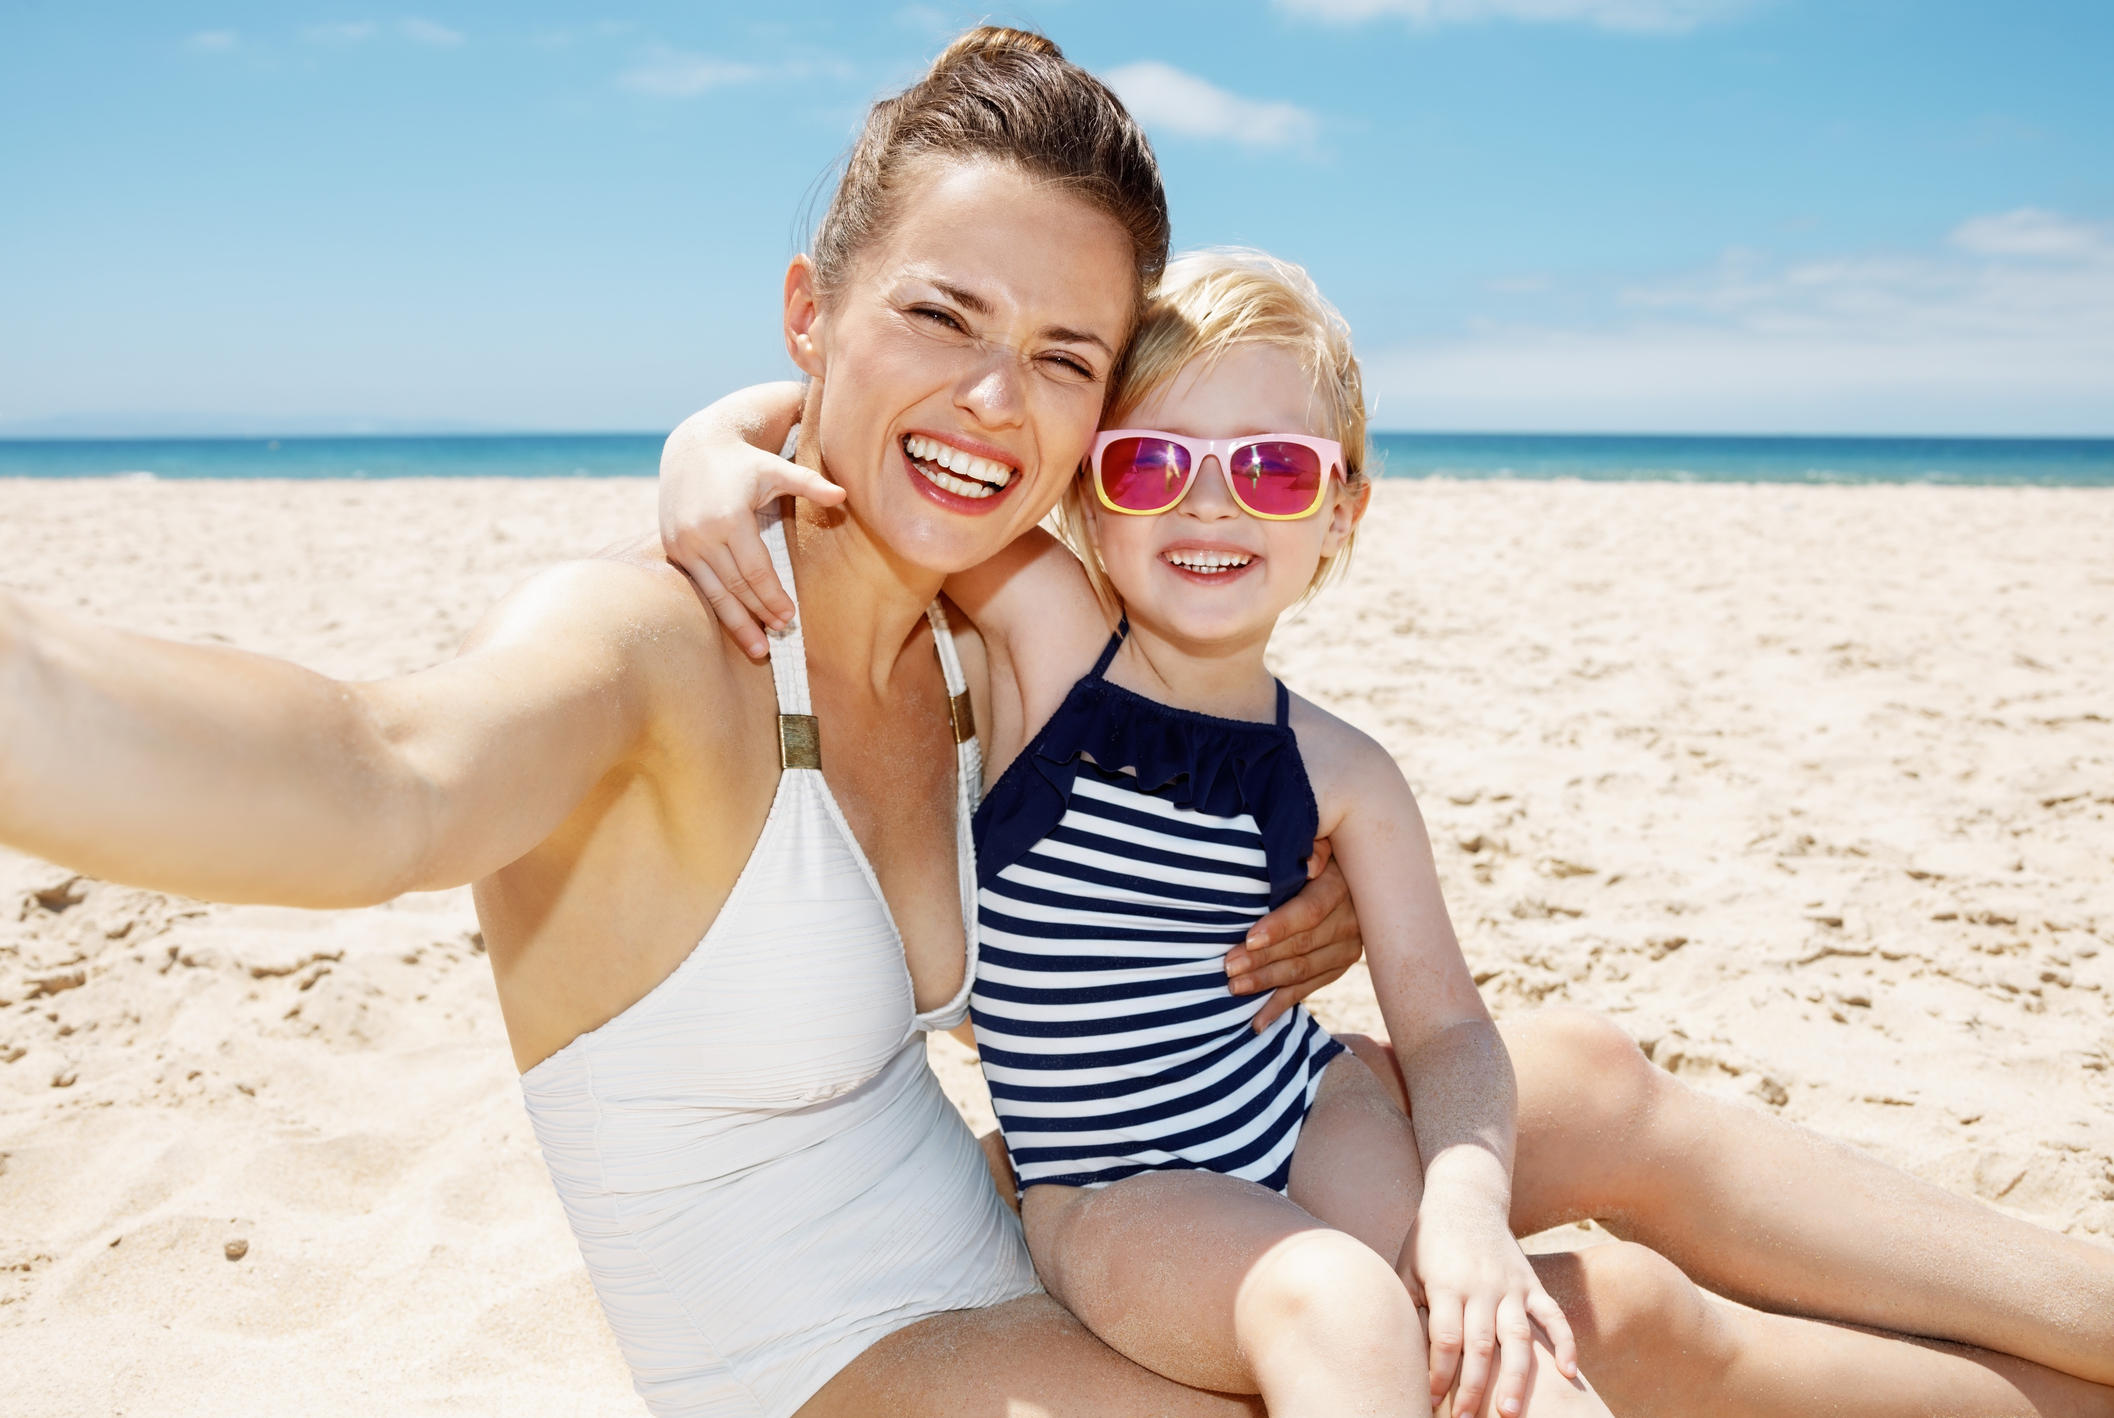 Smiling mom and kid at the beach